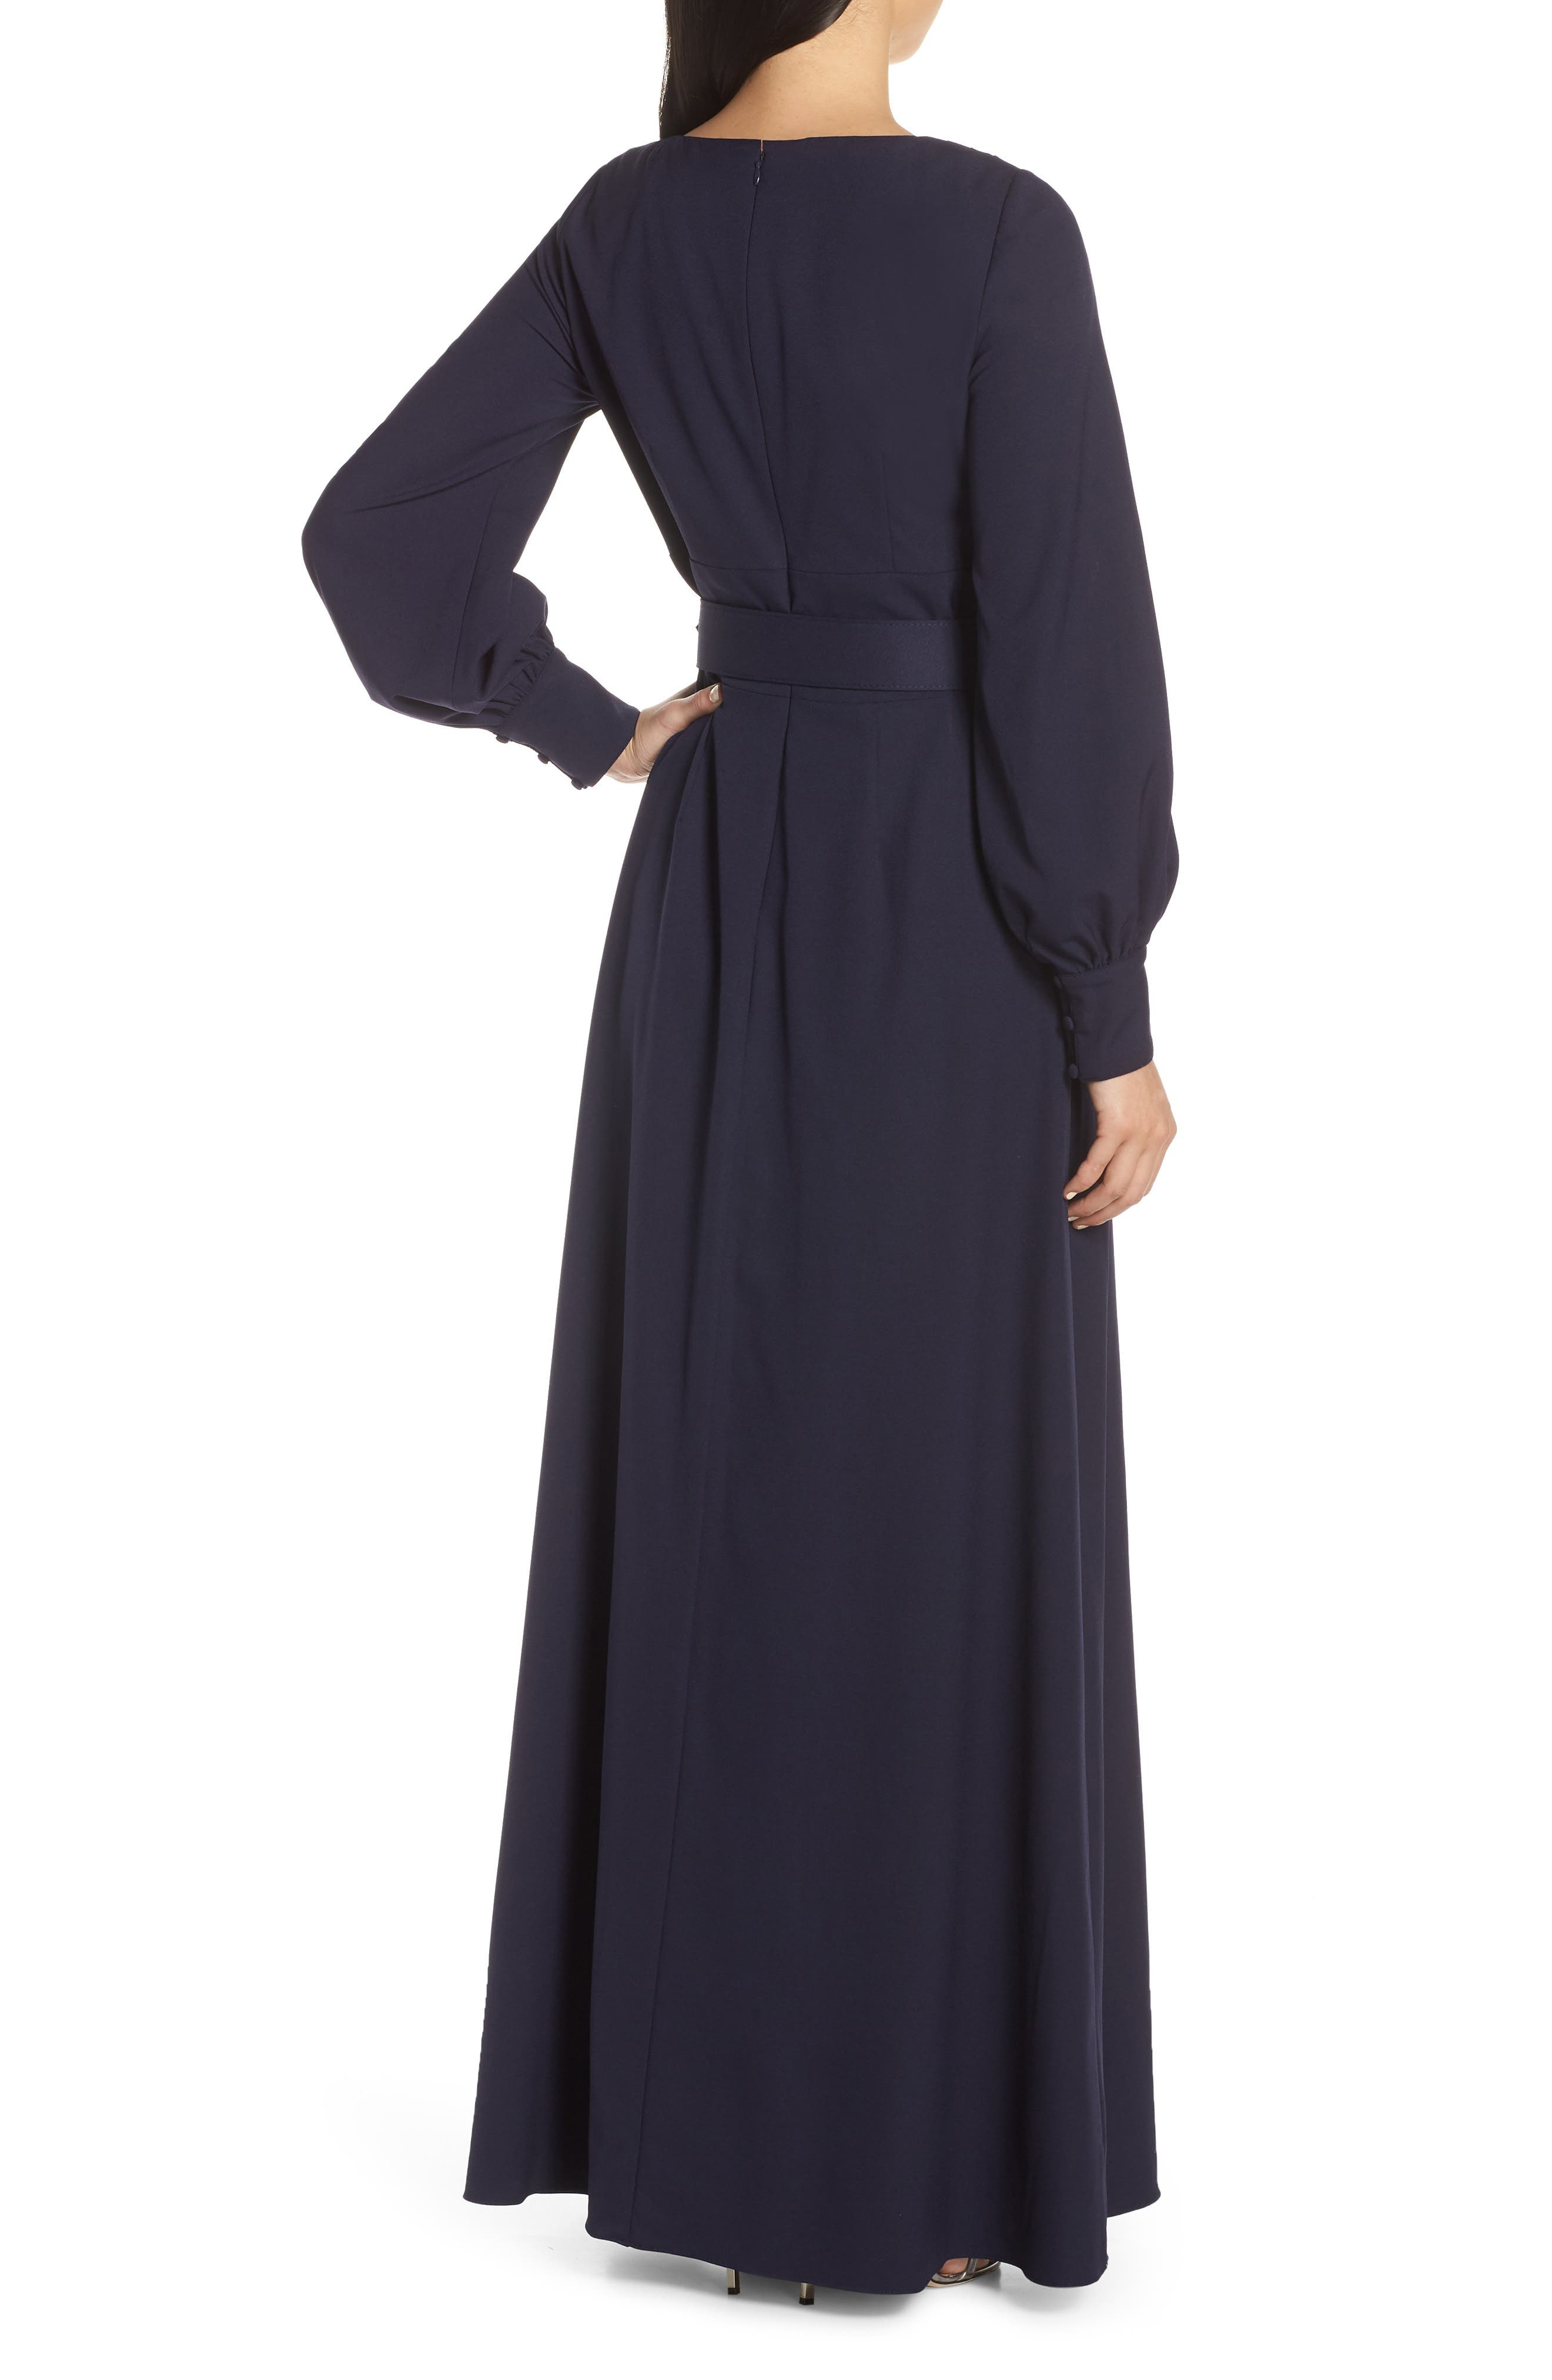 ELIZA J, Long Sleeve Belted Gown, Alternate thumbnail 2, color, NAVY